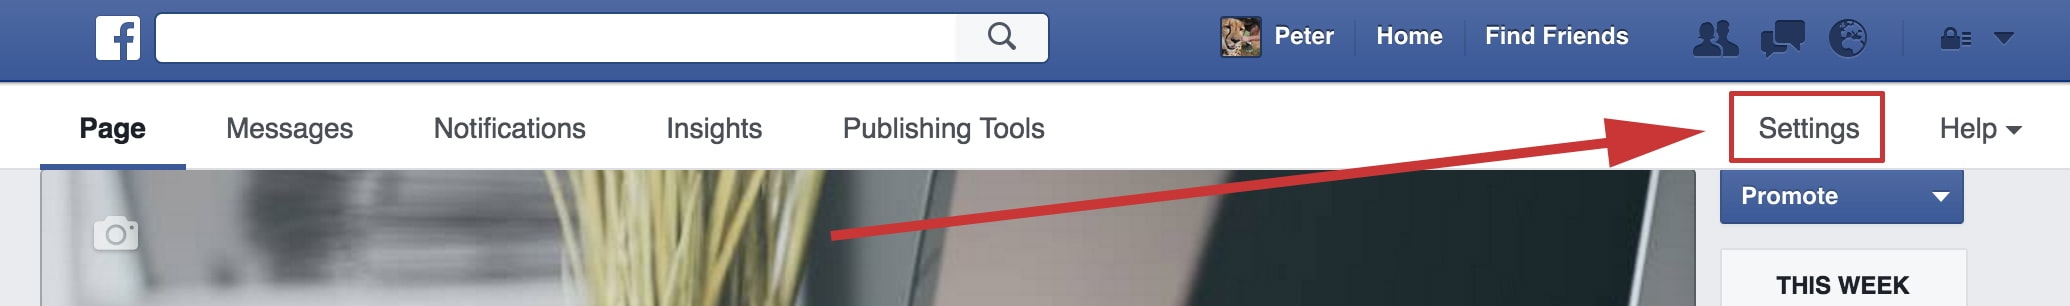 Facebook Page Settings Link